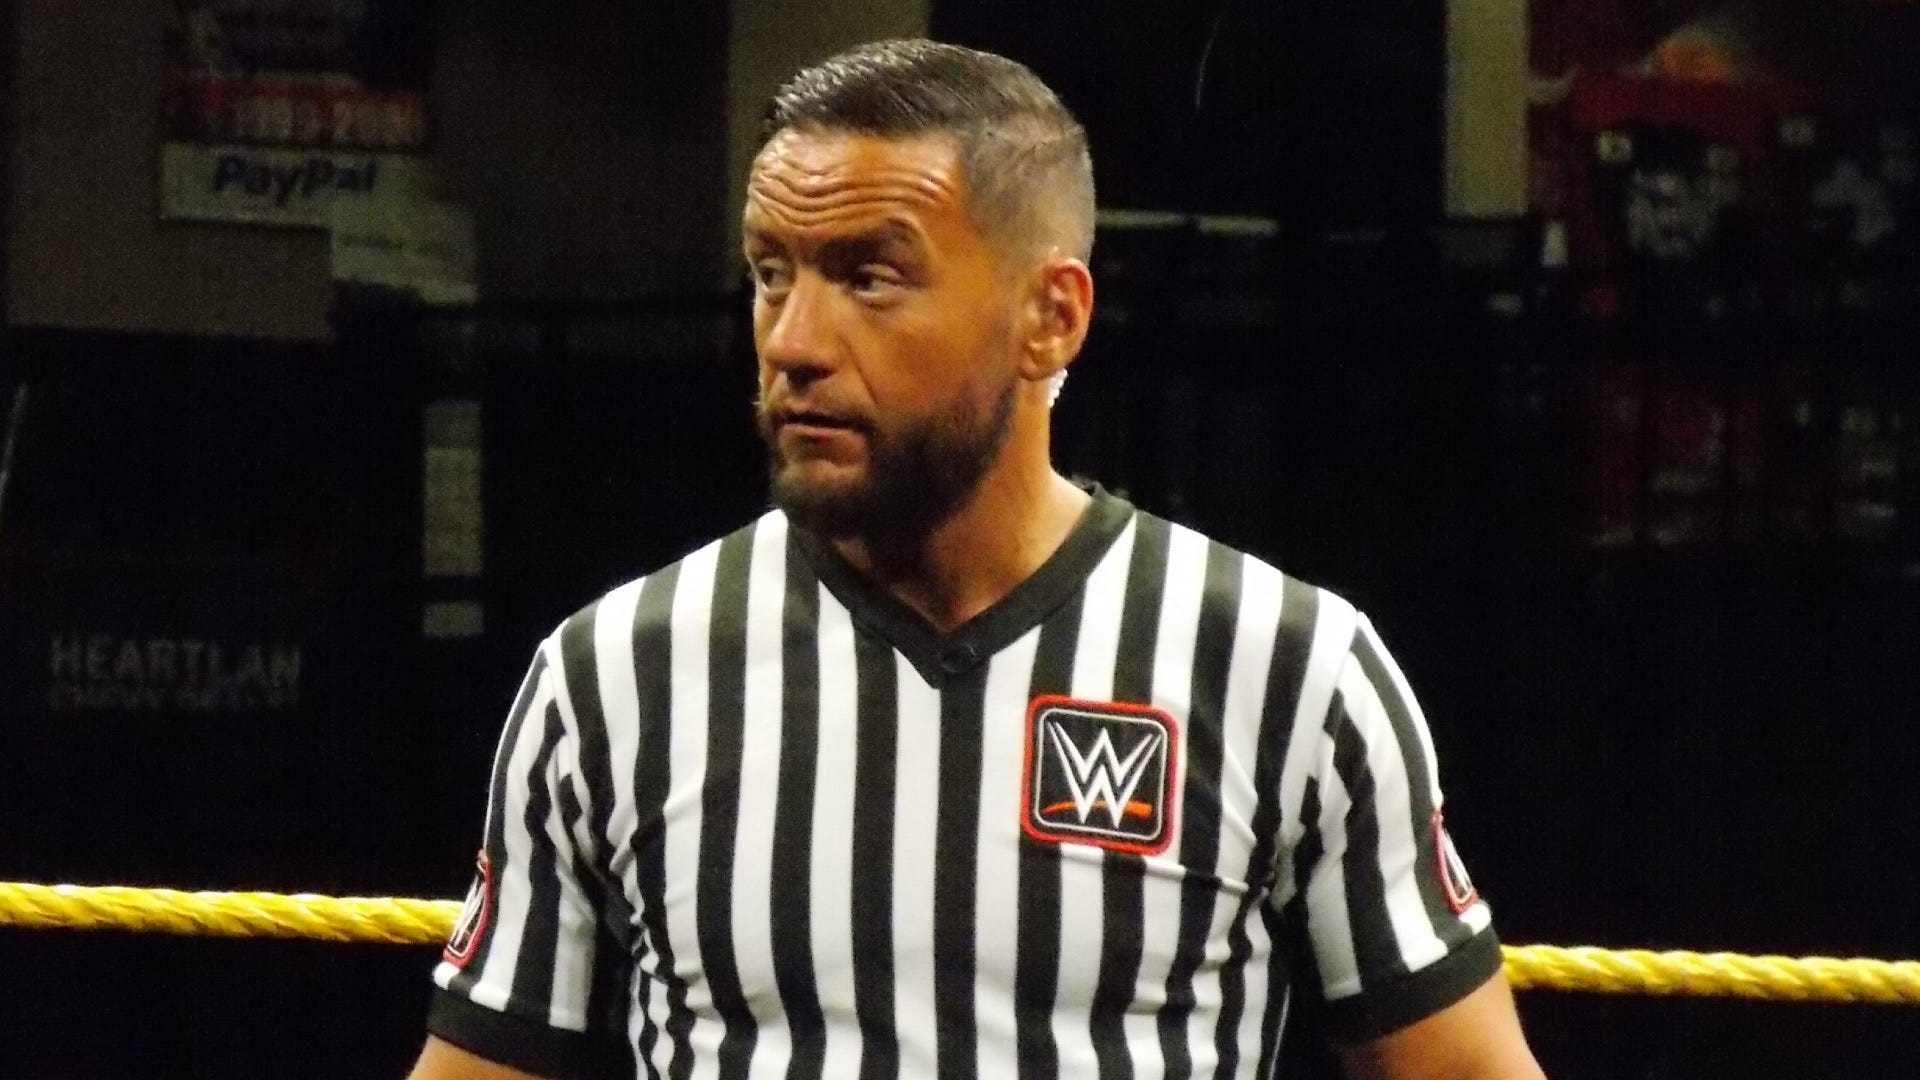 NXT Referee Was Reportedly Suspended & Banned From The WWE PC Over Controversial Heat